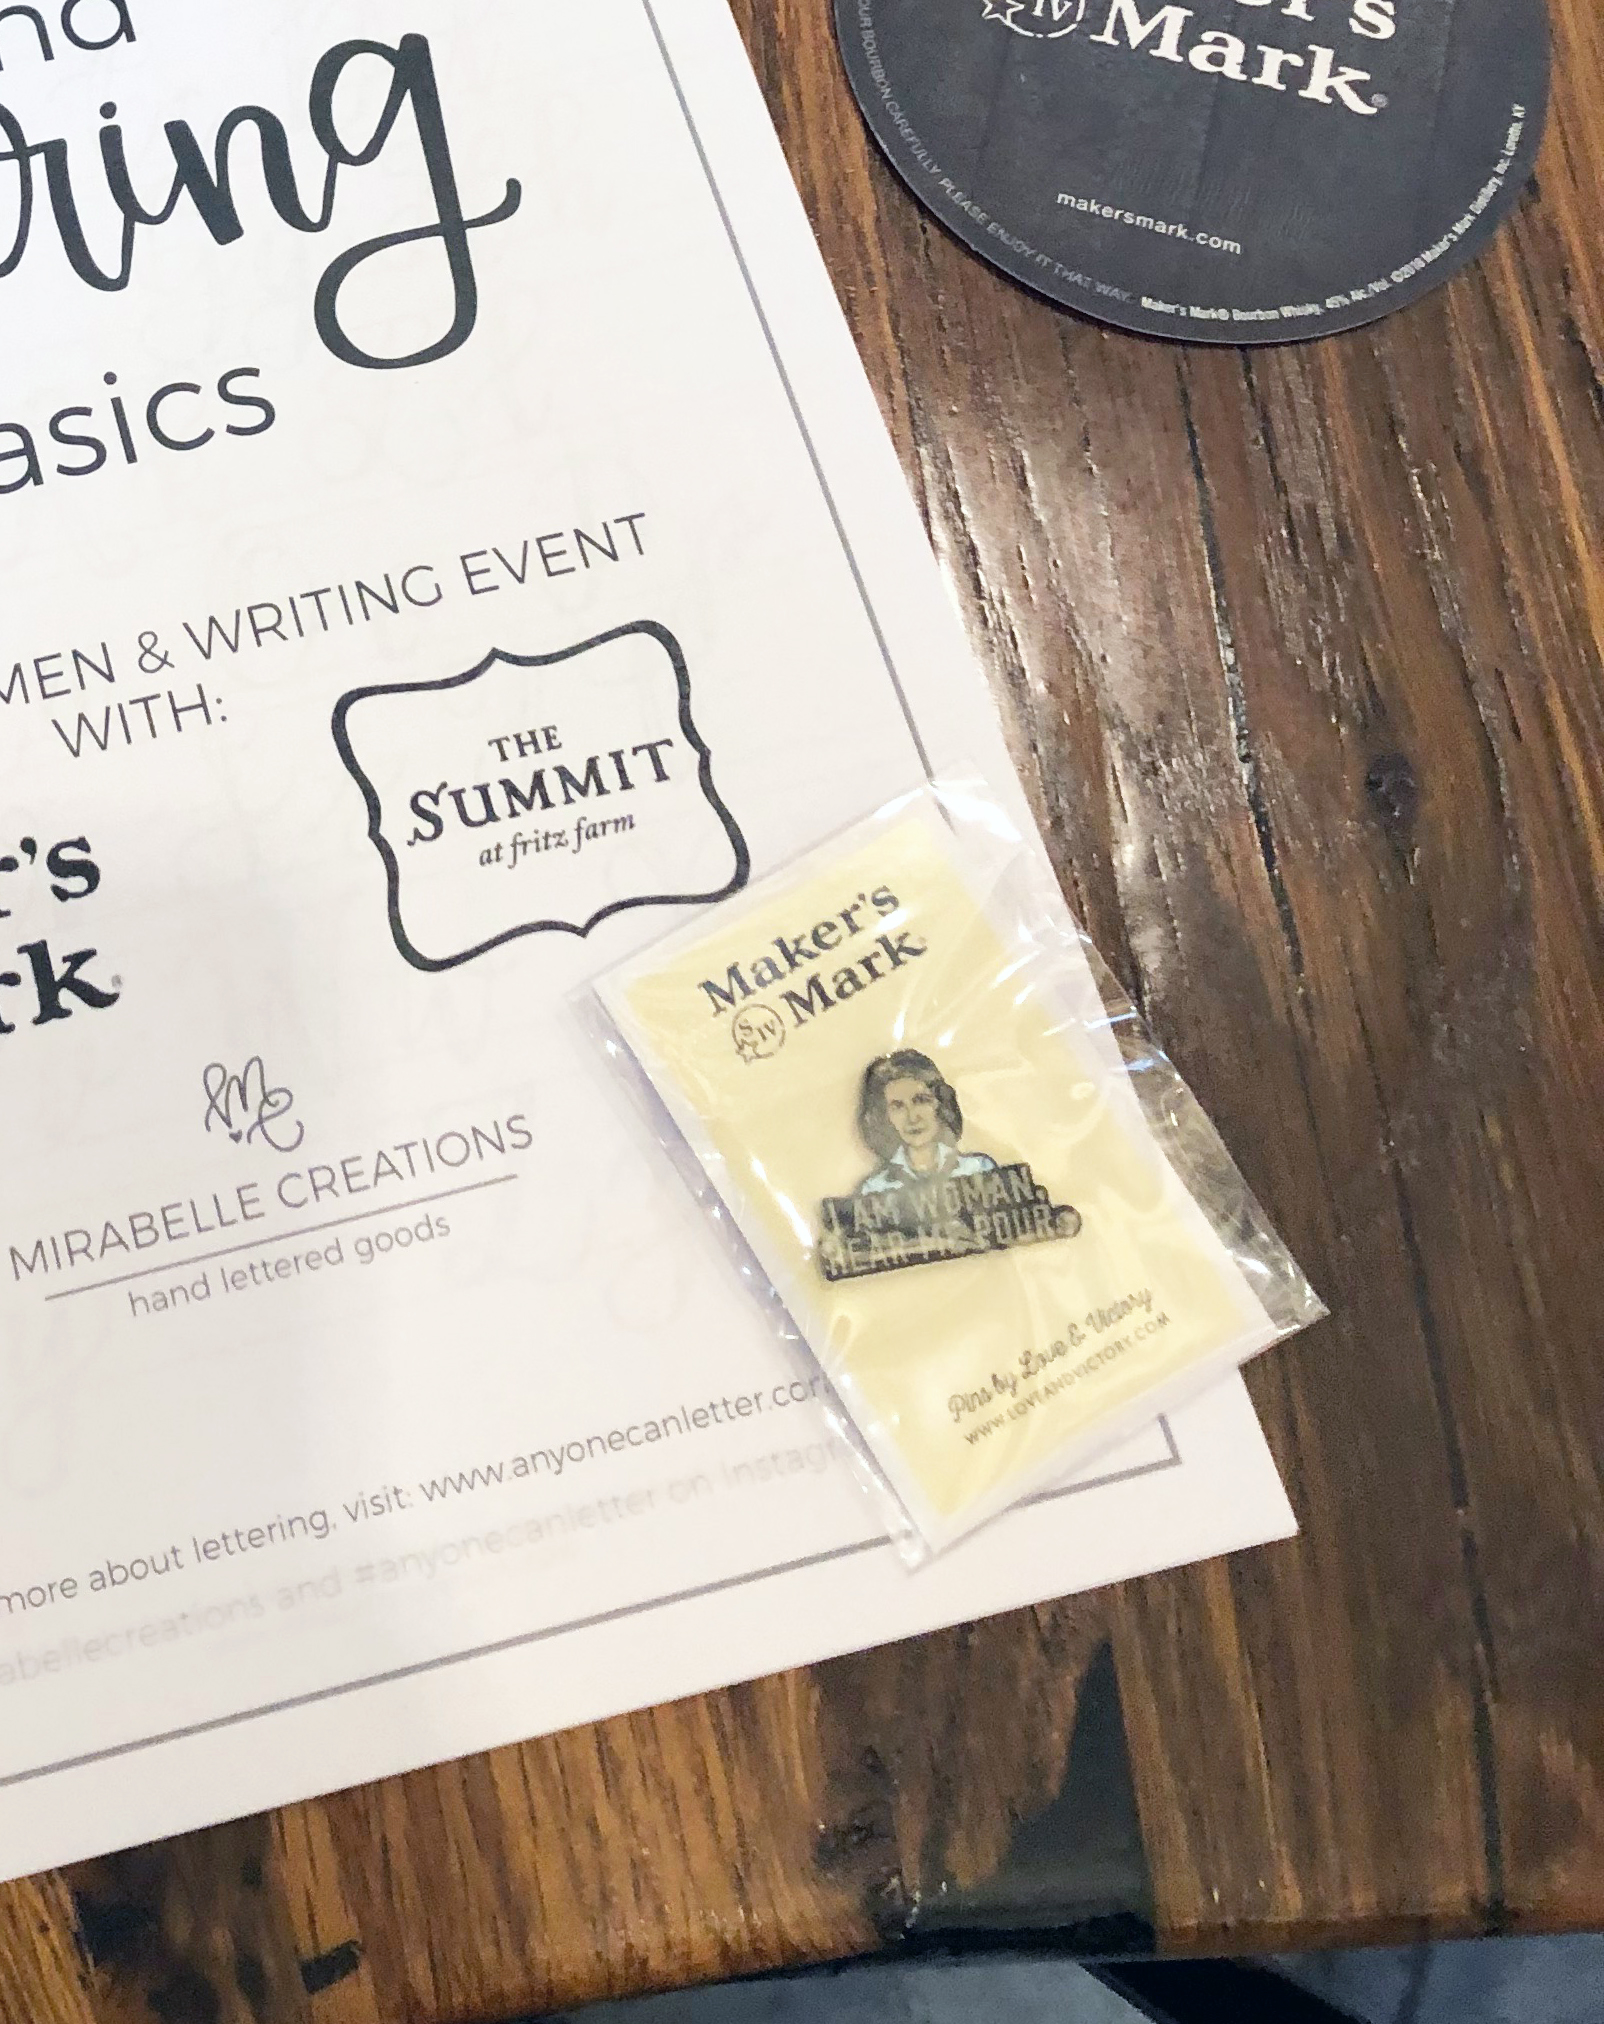 Maker's Mark Whisky, Women & Writing Event at the Summit at Fritz Farm with lettering by Mirabelle Creations